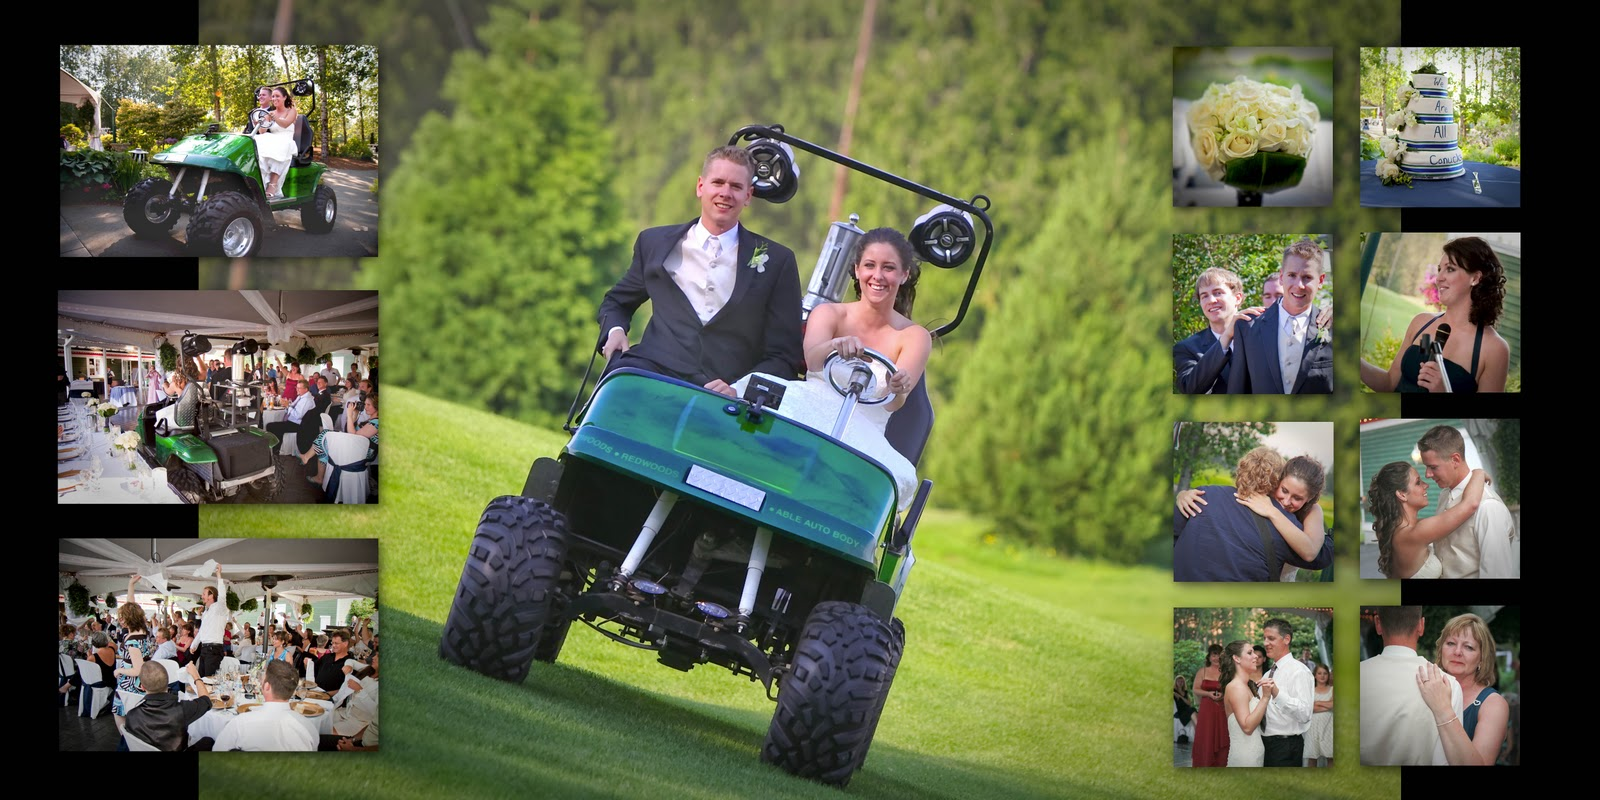 Iconic Vancouver Wedding Photography Redwoods Golf Course Wedding Fort Langley